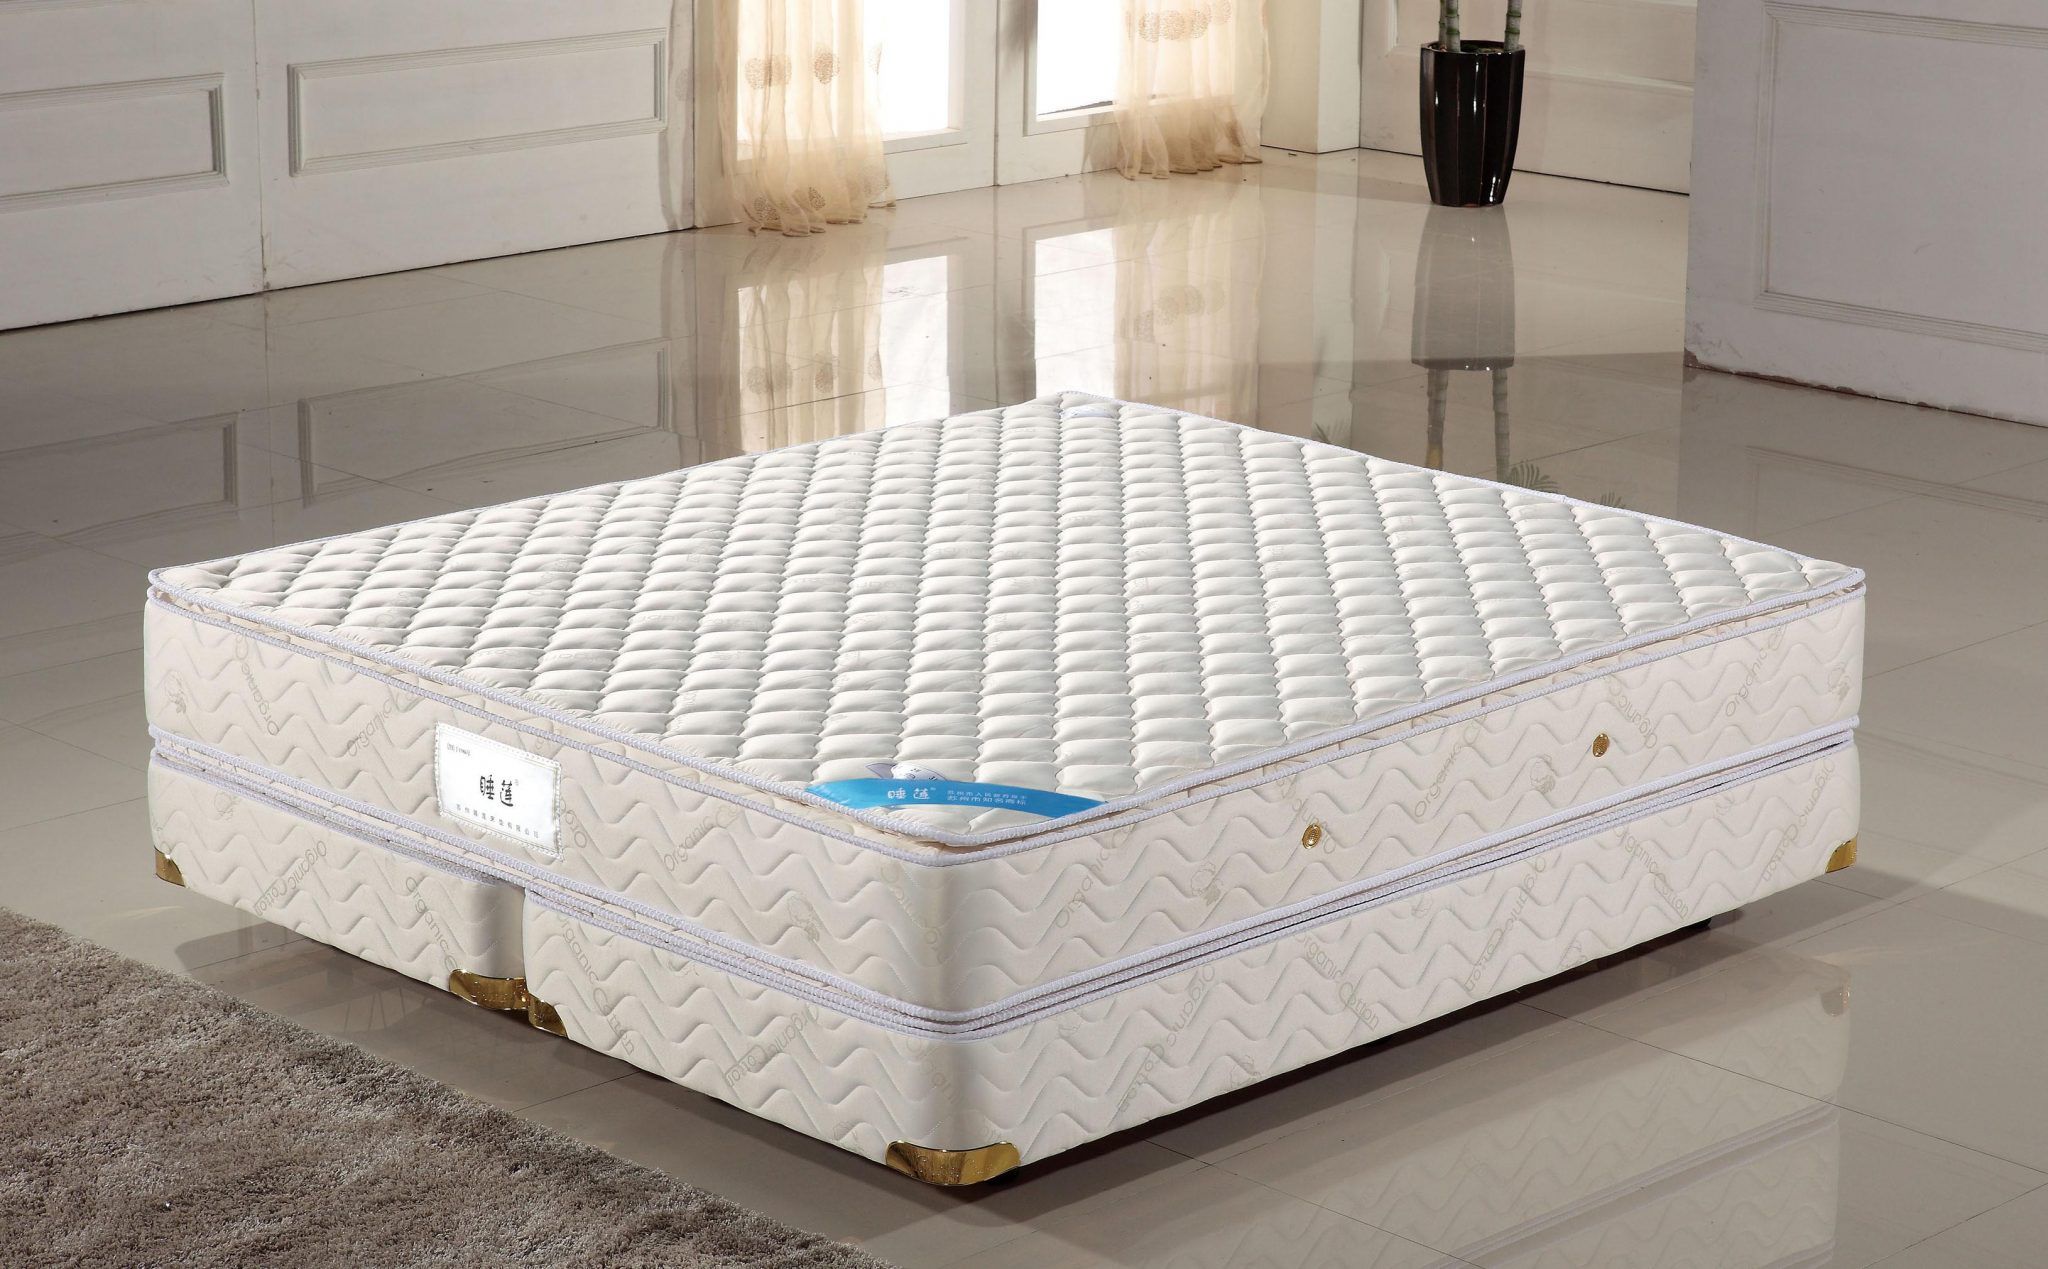 Philippines-Mattress-Market.jpg